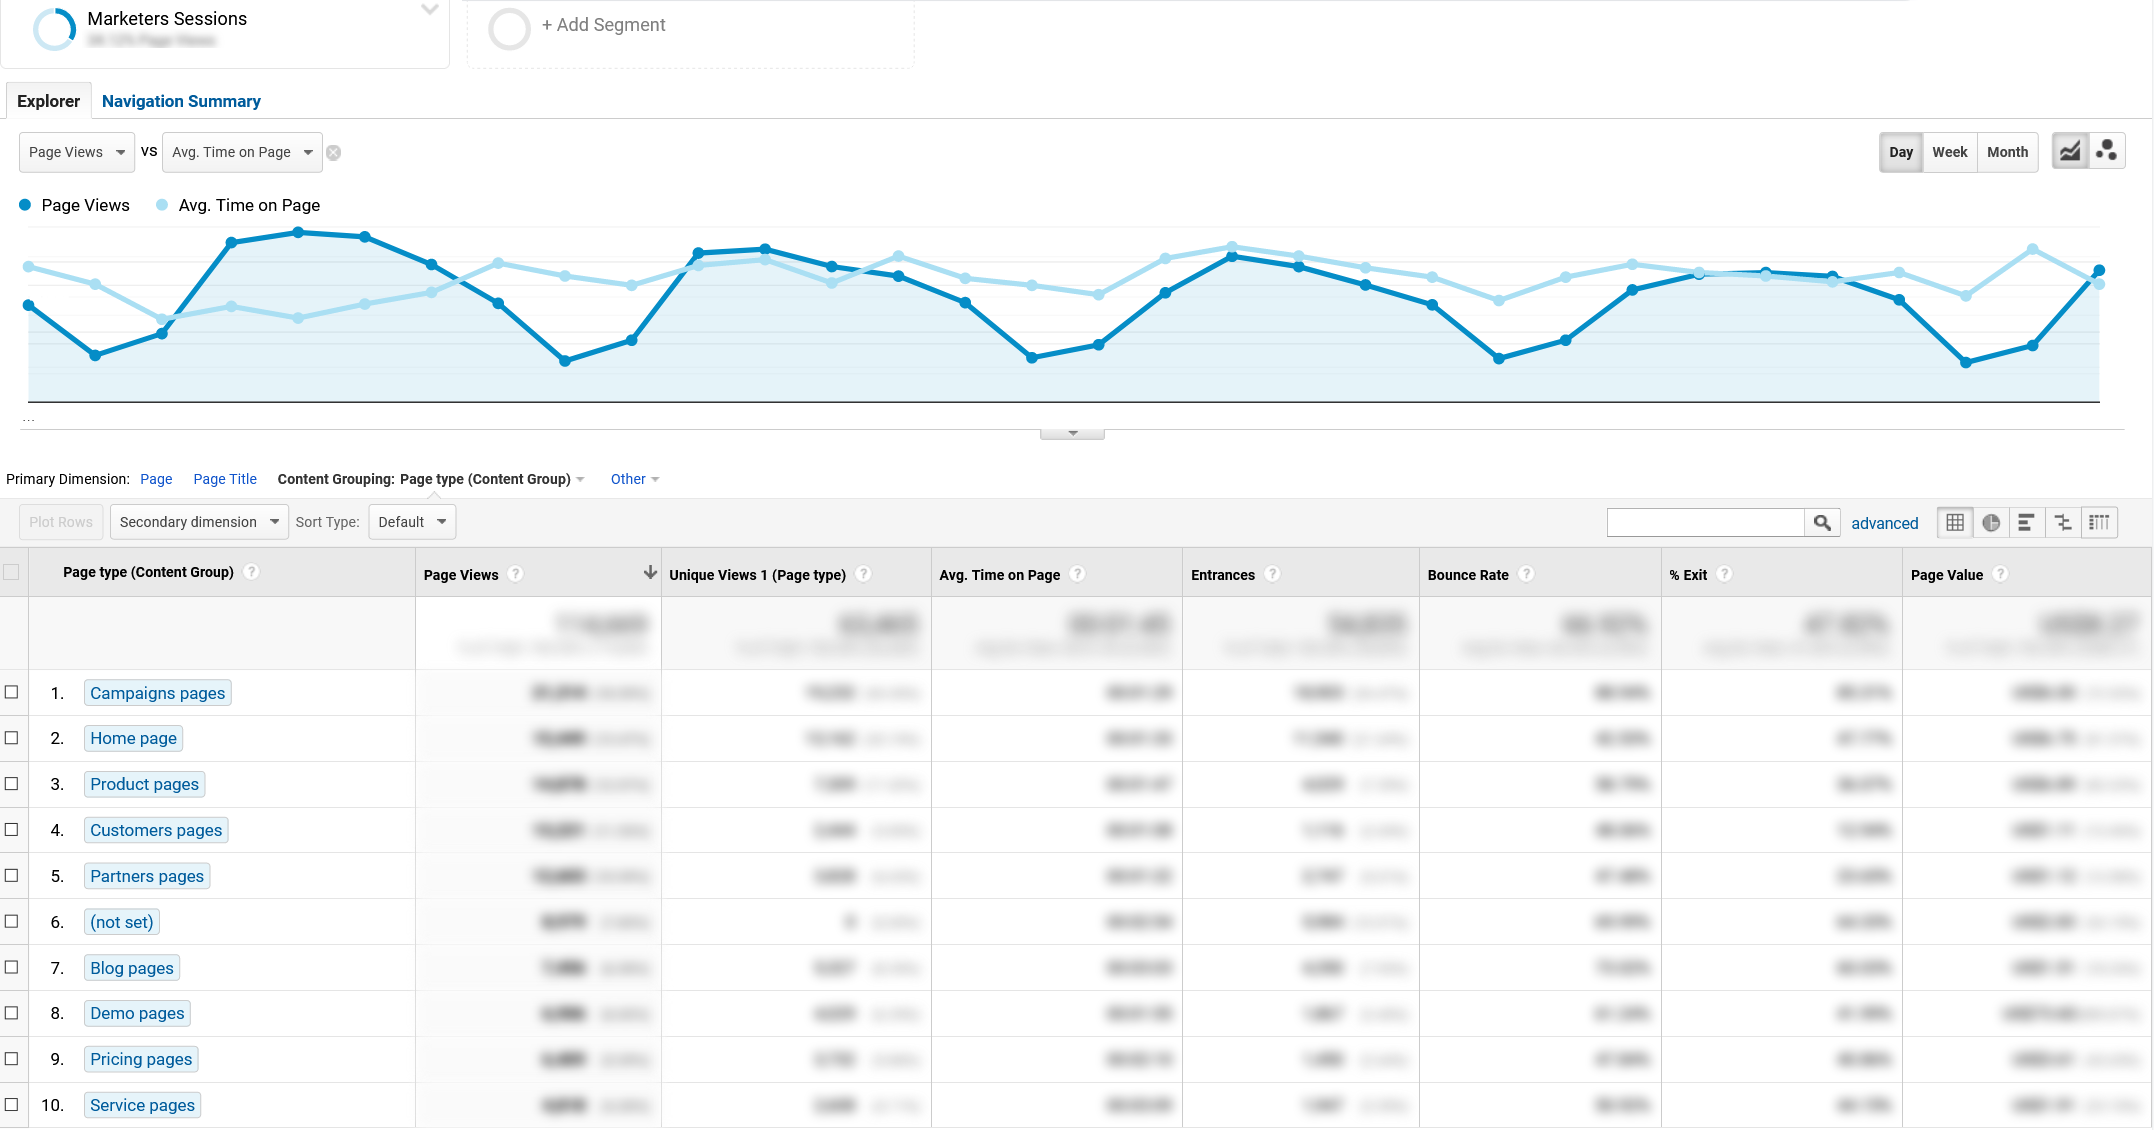 Marketers Session in Google Analytics